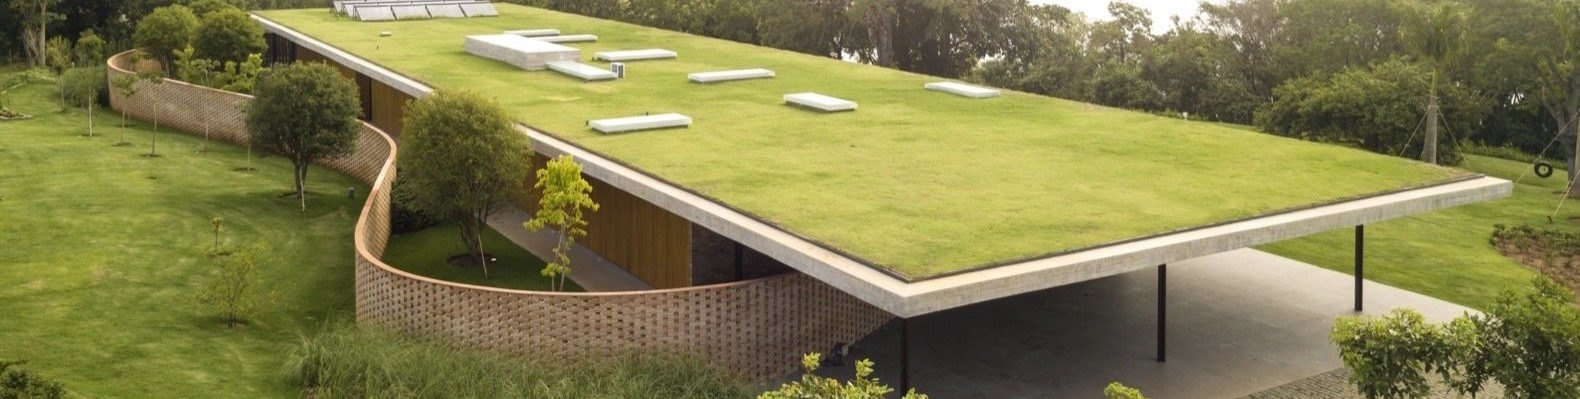 Large green roof with solar panels